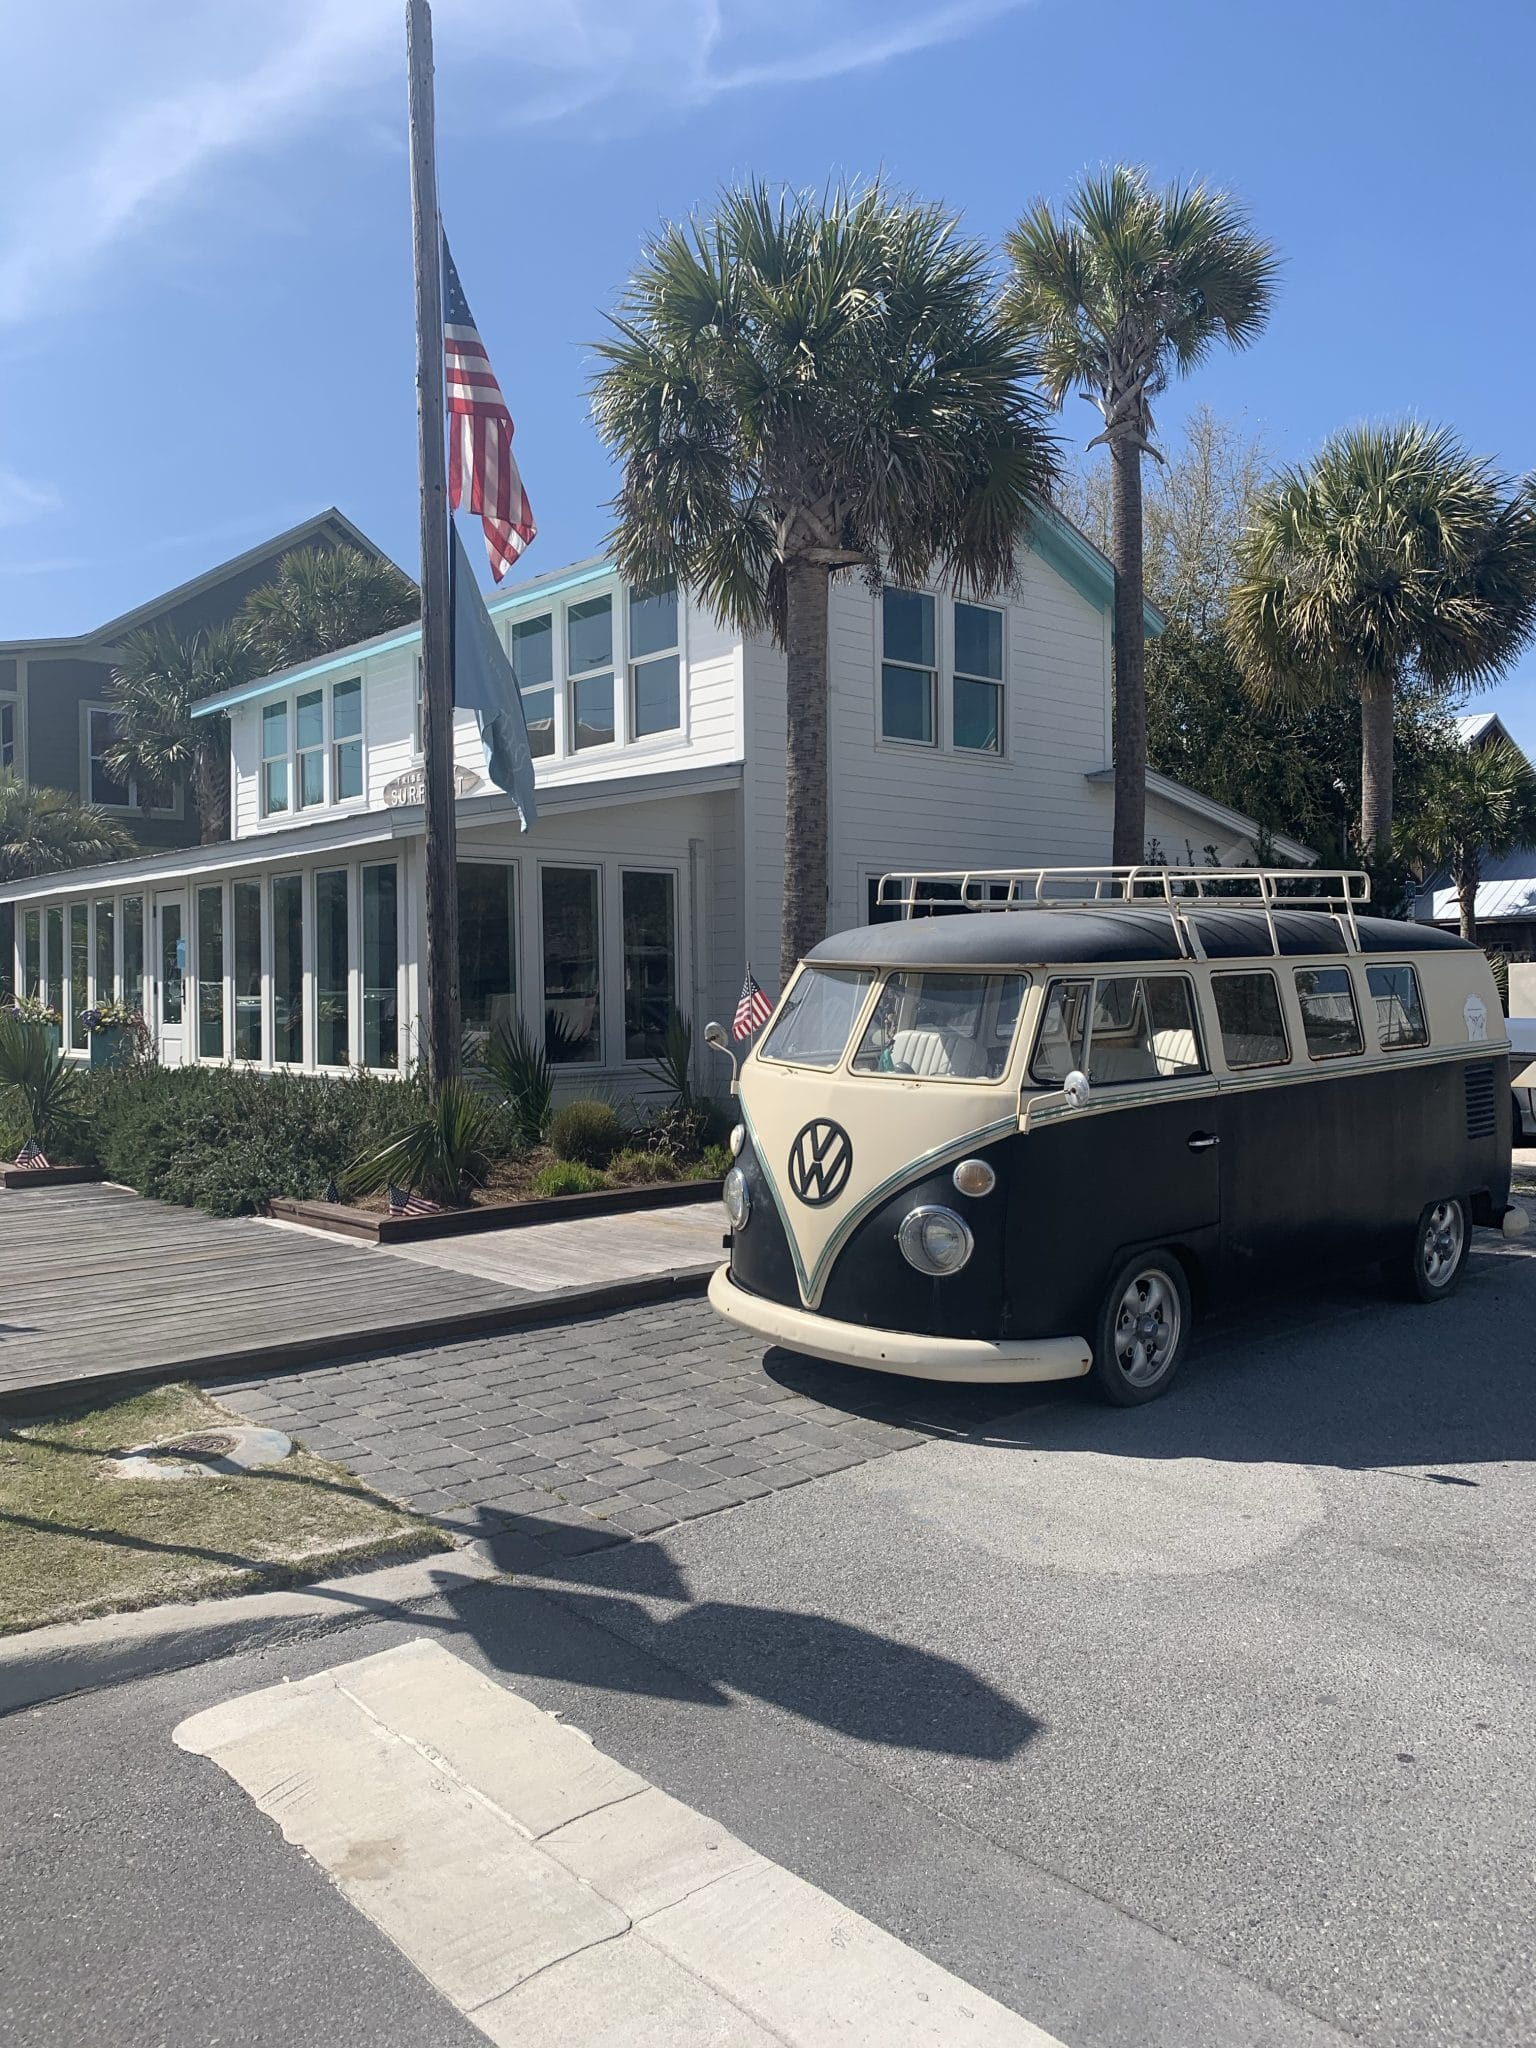 Tribe Kelly Surf Company, 30A, Destin, Florida vacation 2021, Stilettos and Diapers